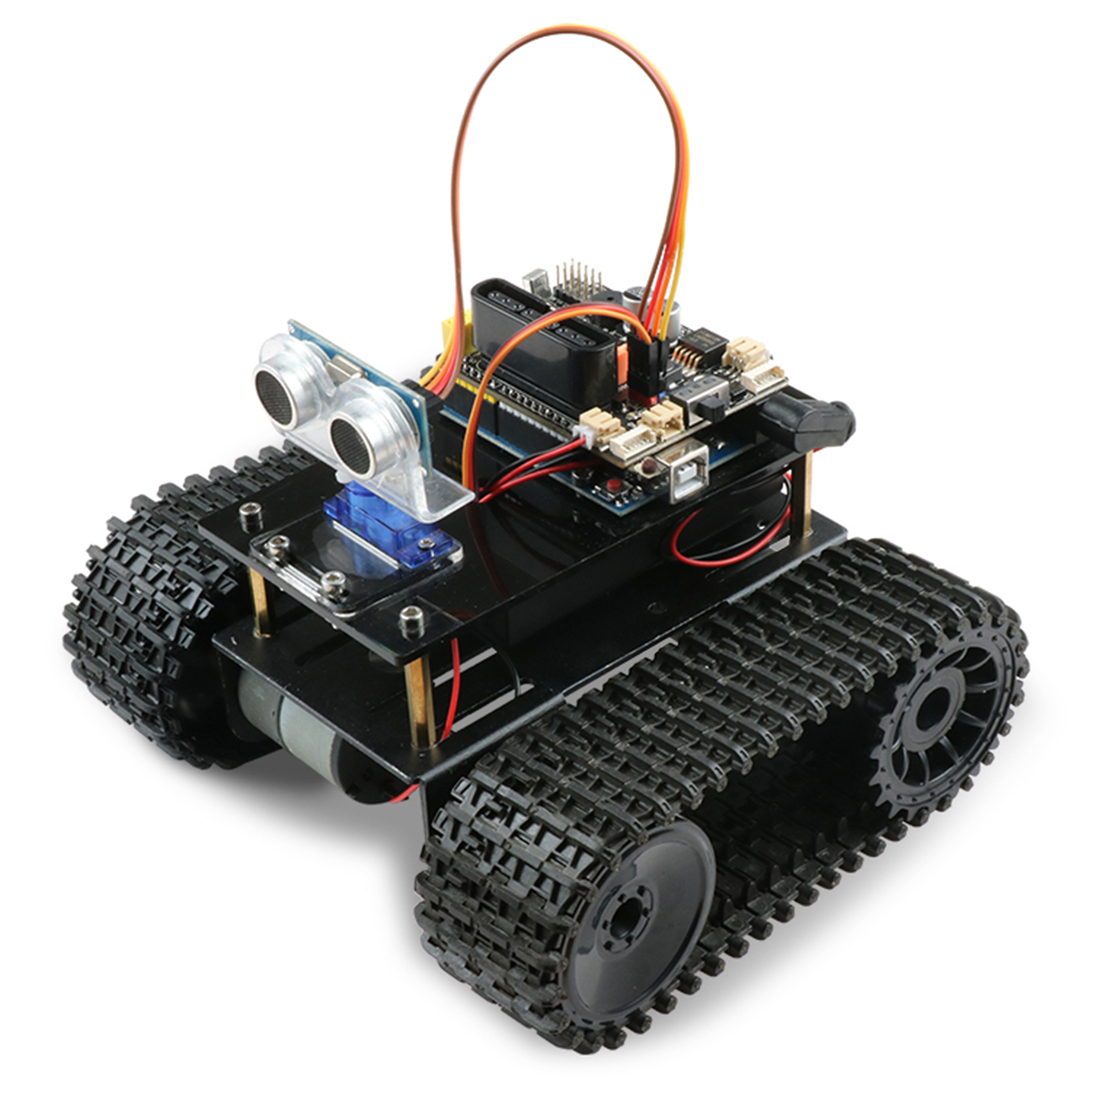 DIY Obstacle Avoidance Smart Programmable Robot Tank Educational Learning Kit for Arduino UNO High Tech Toy Gift For Christmas 1